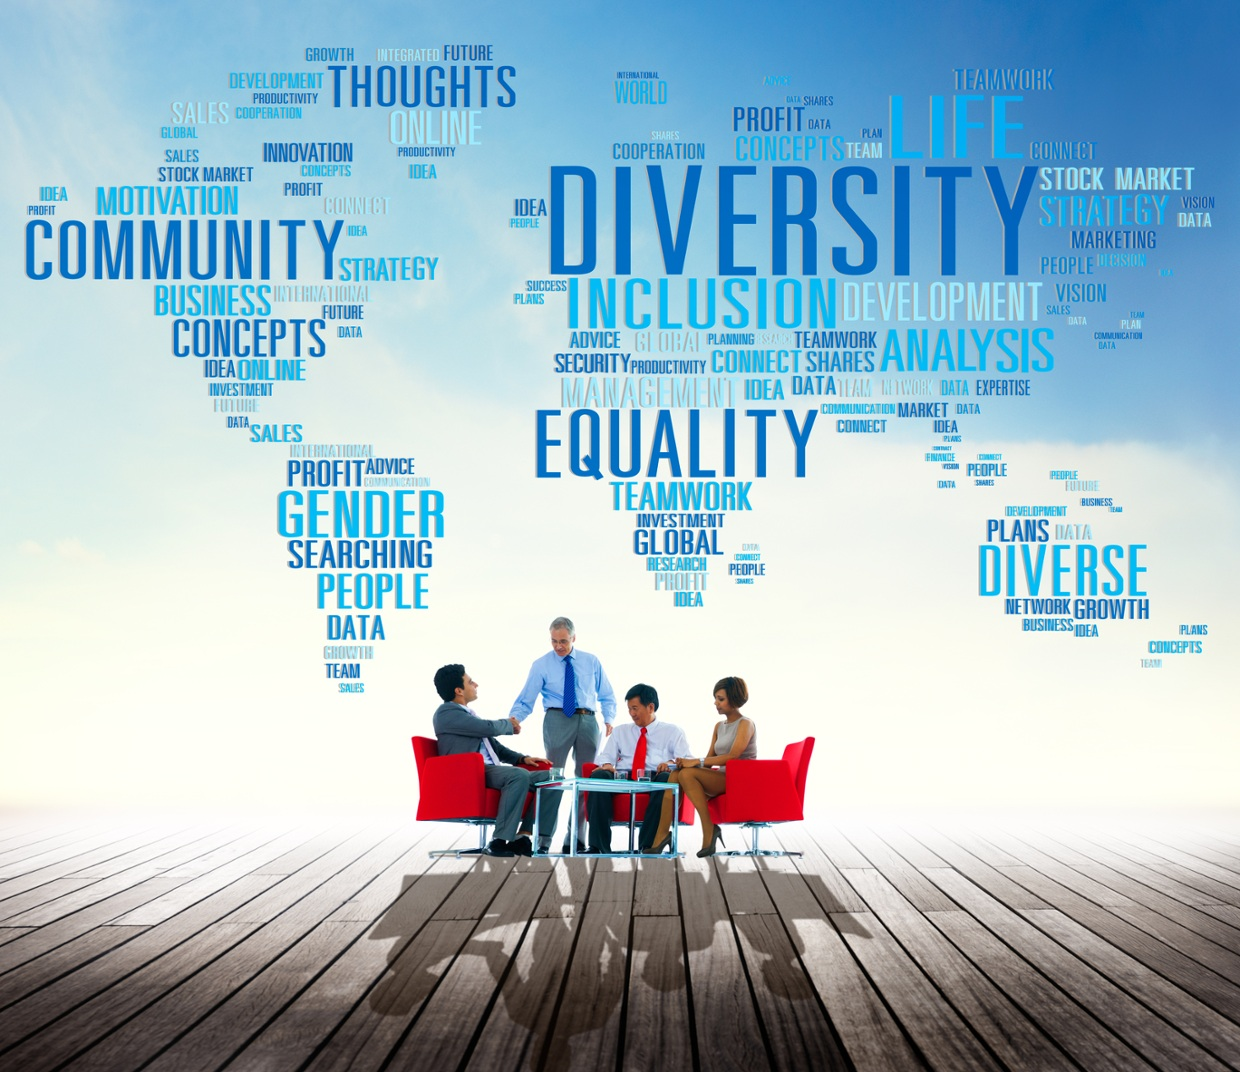 Diversity And Inclusion Quotes Shrm Diversity & Inclusion Conference Speaker Quotes  Thinglink